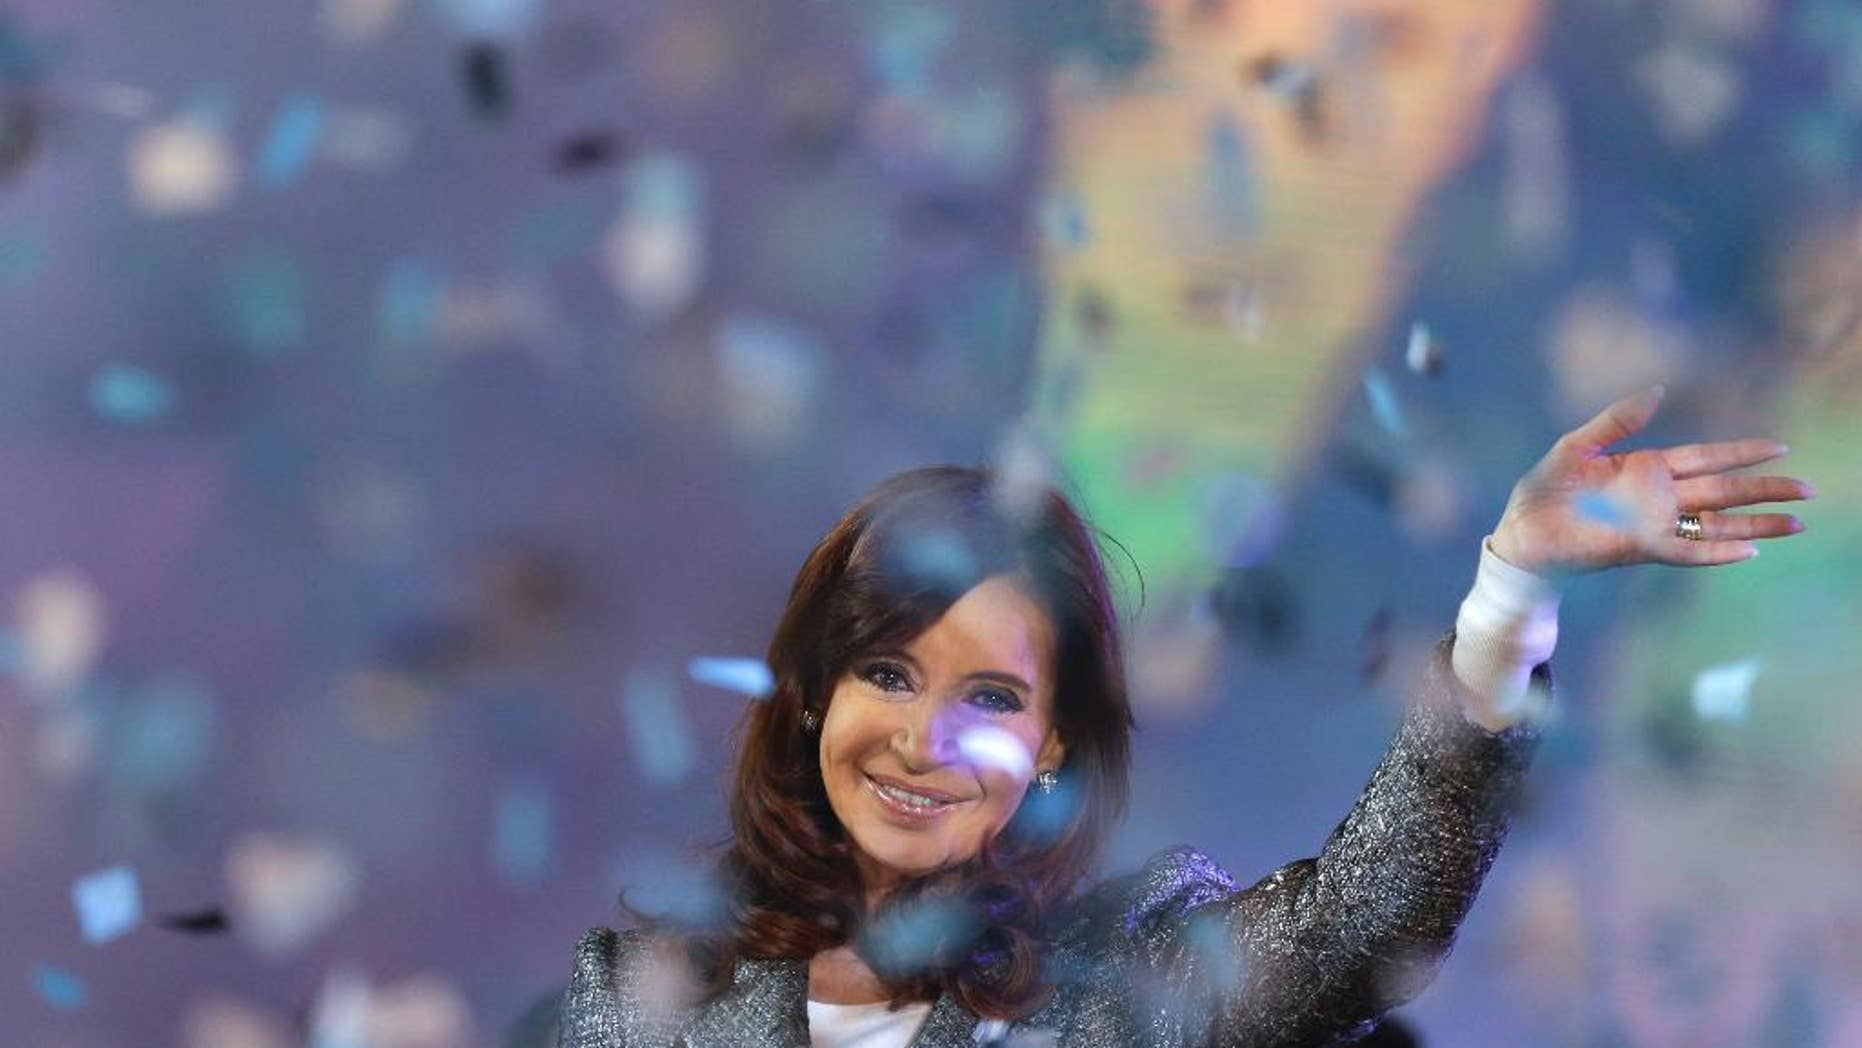 FILE - In this May 25, 2015, file photo, Argentina's President Cristina Fernandez smiles to supporters during the celebration of the 25 of May holiday at Plaza de Mayo in Buenos Aires, Argentina. It was announced Sunday, June 21, that Fernandez will not run for any public office once she leaves the presidency on December 10. (AP Photo/Natacha Pisarenko, File)